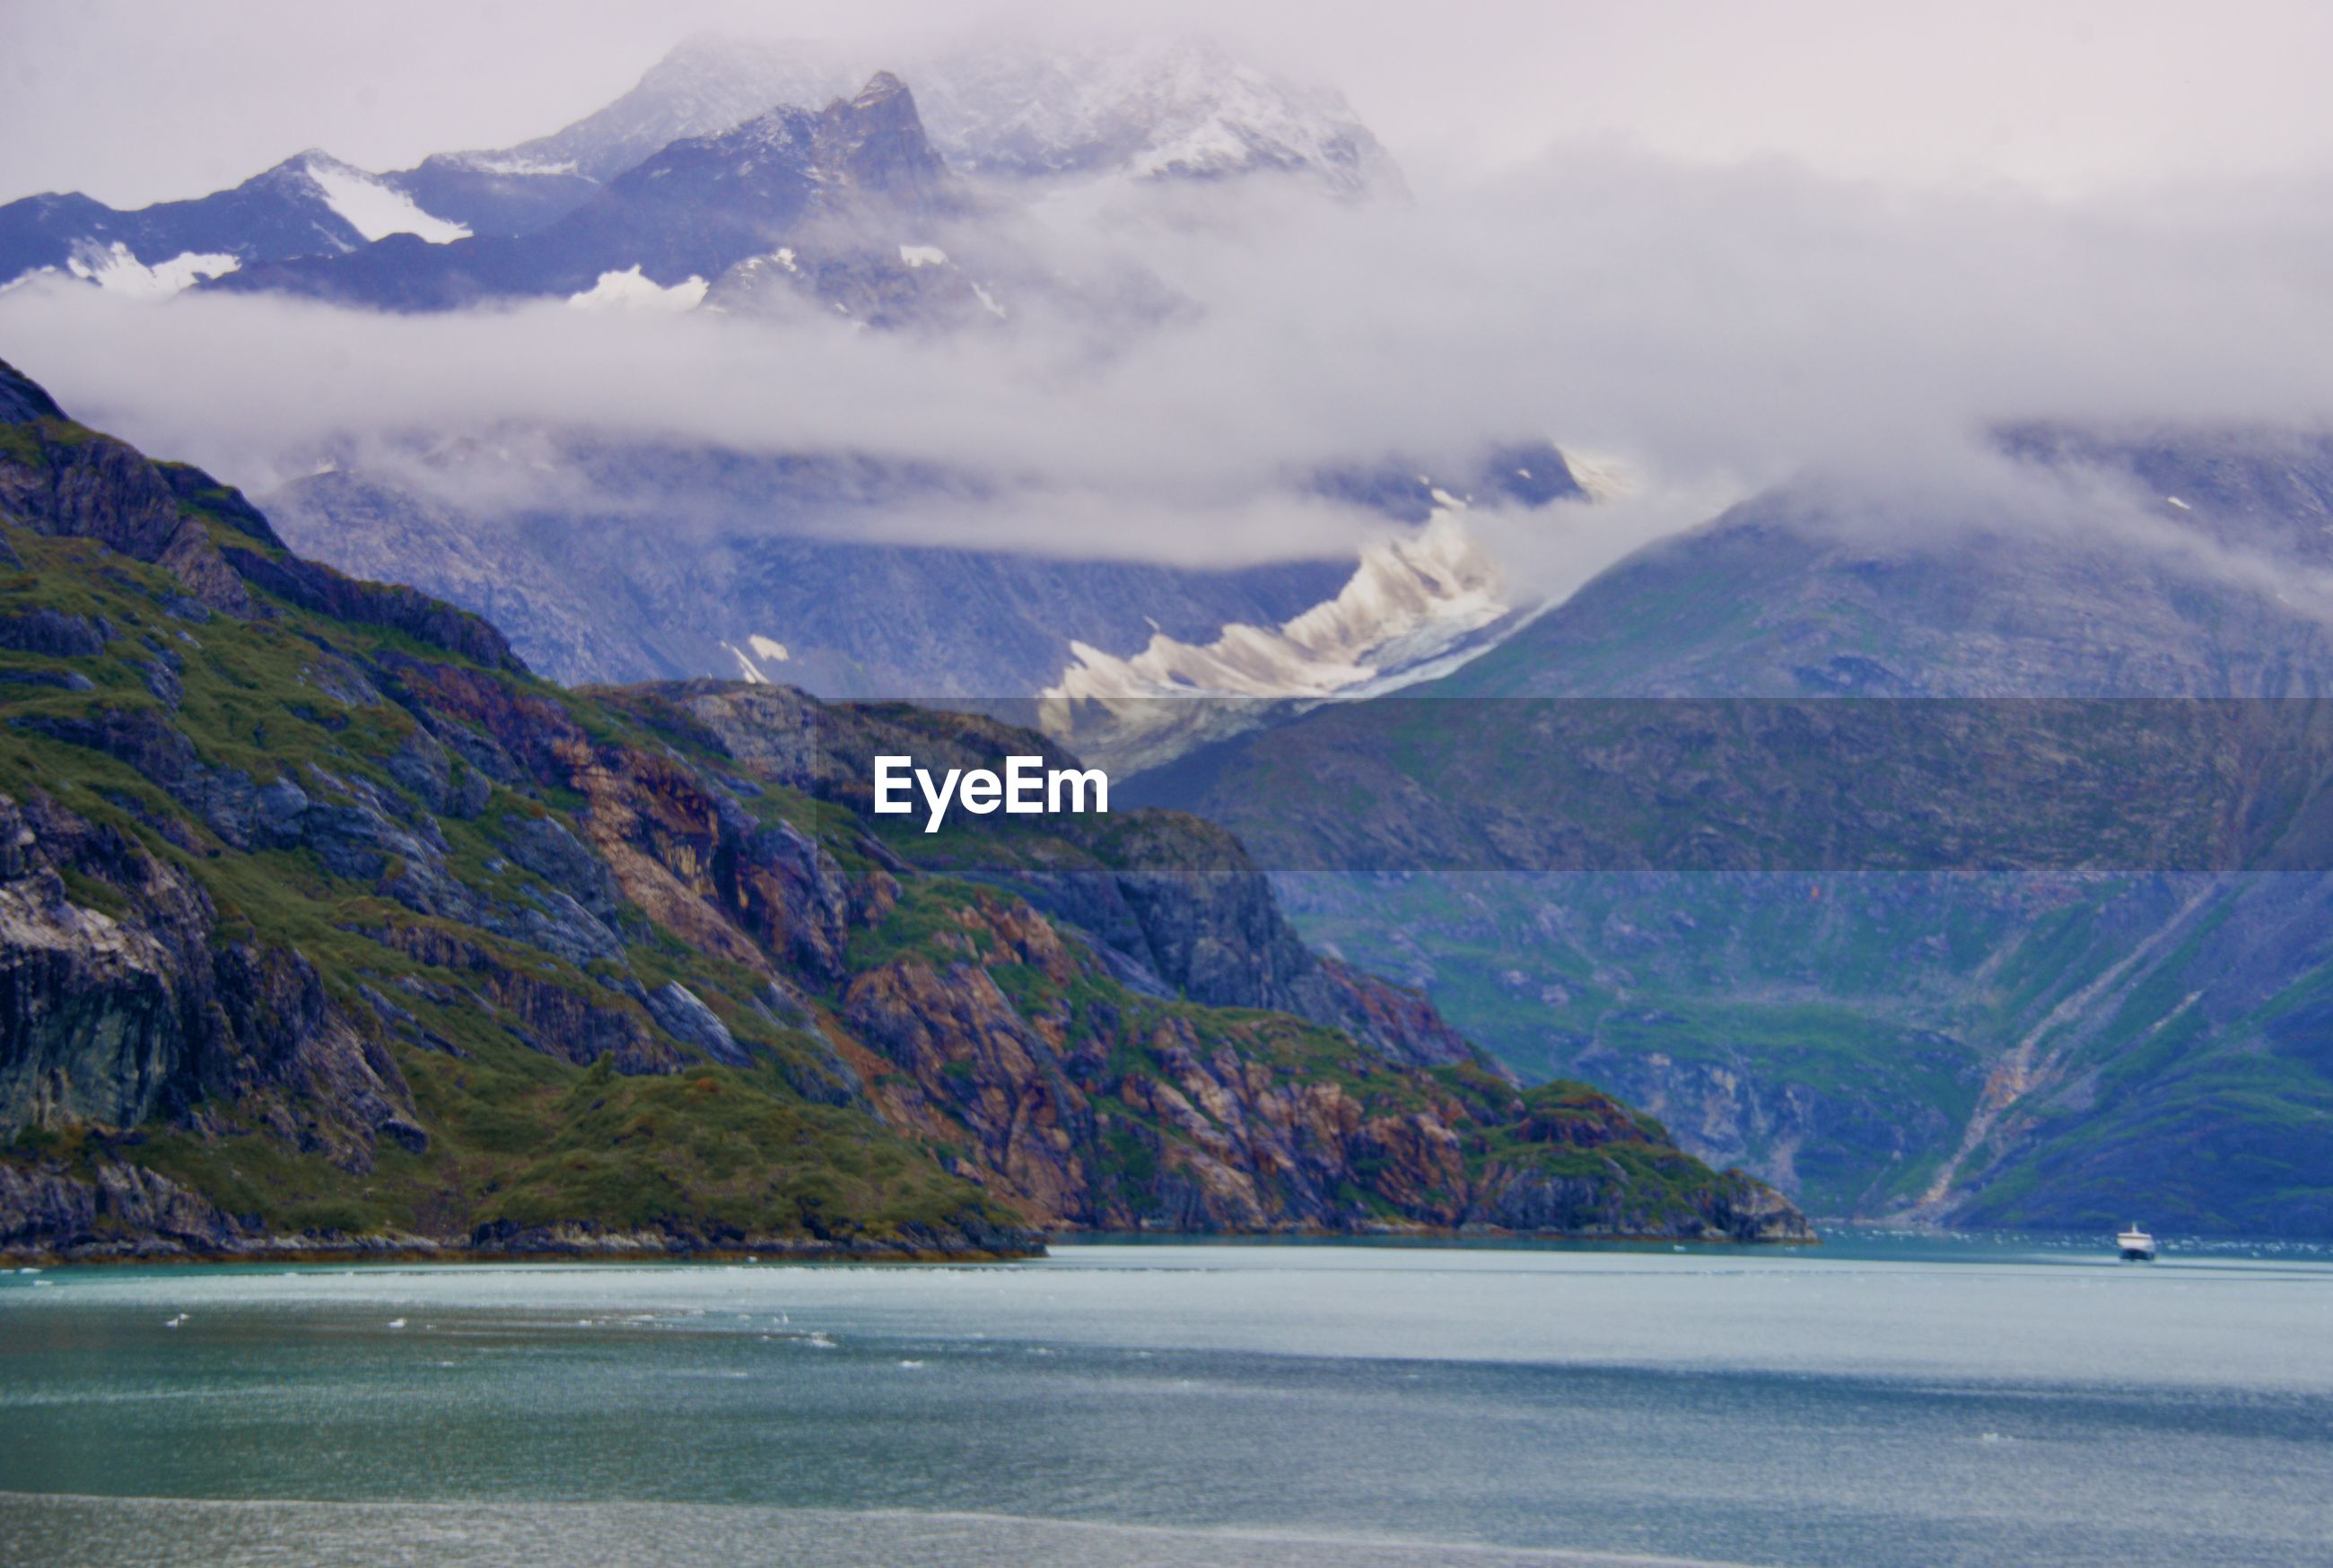 Scenic view of mountains and sea against sky